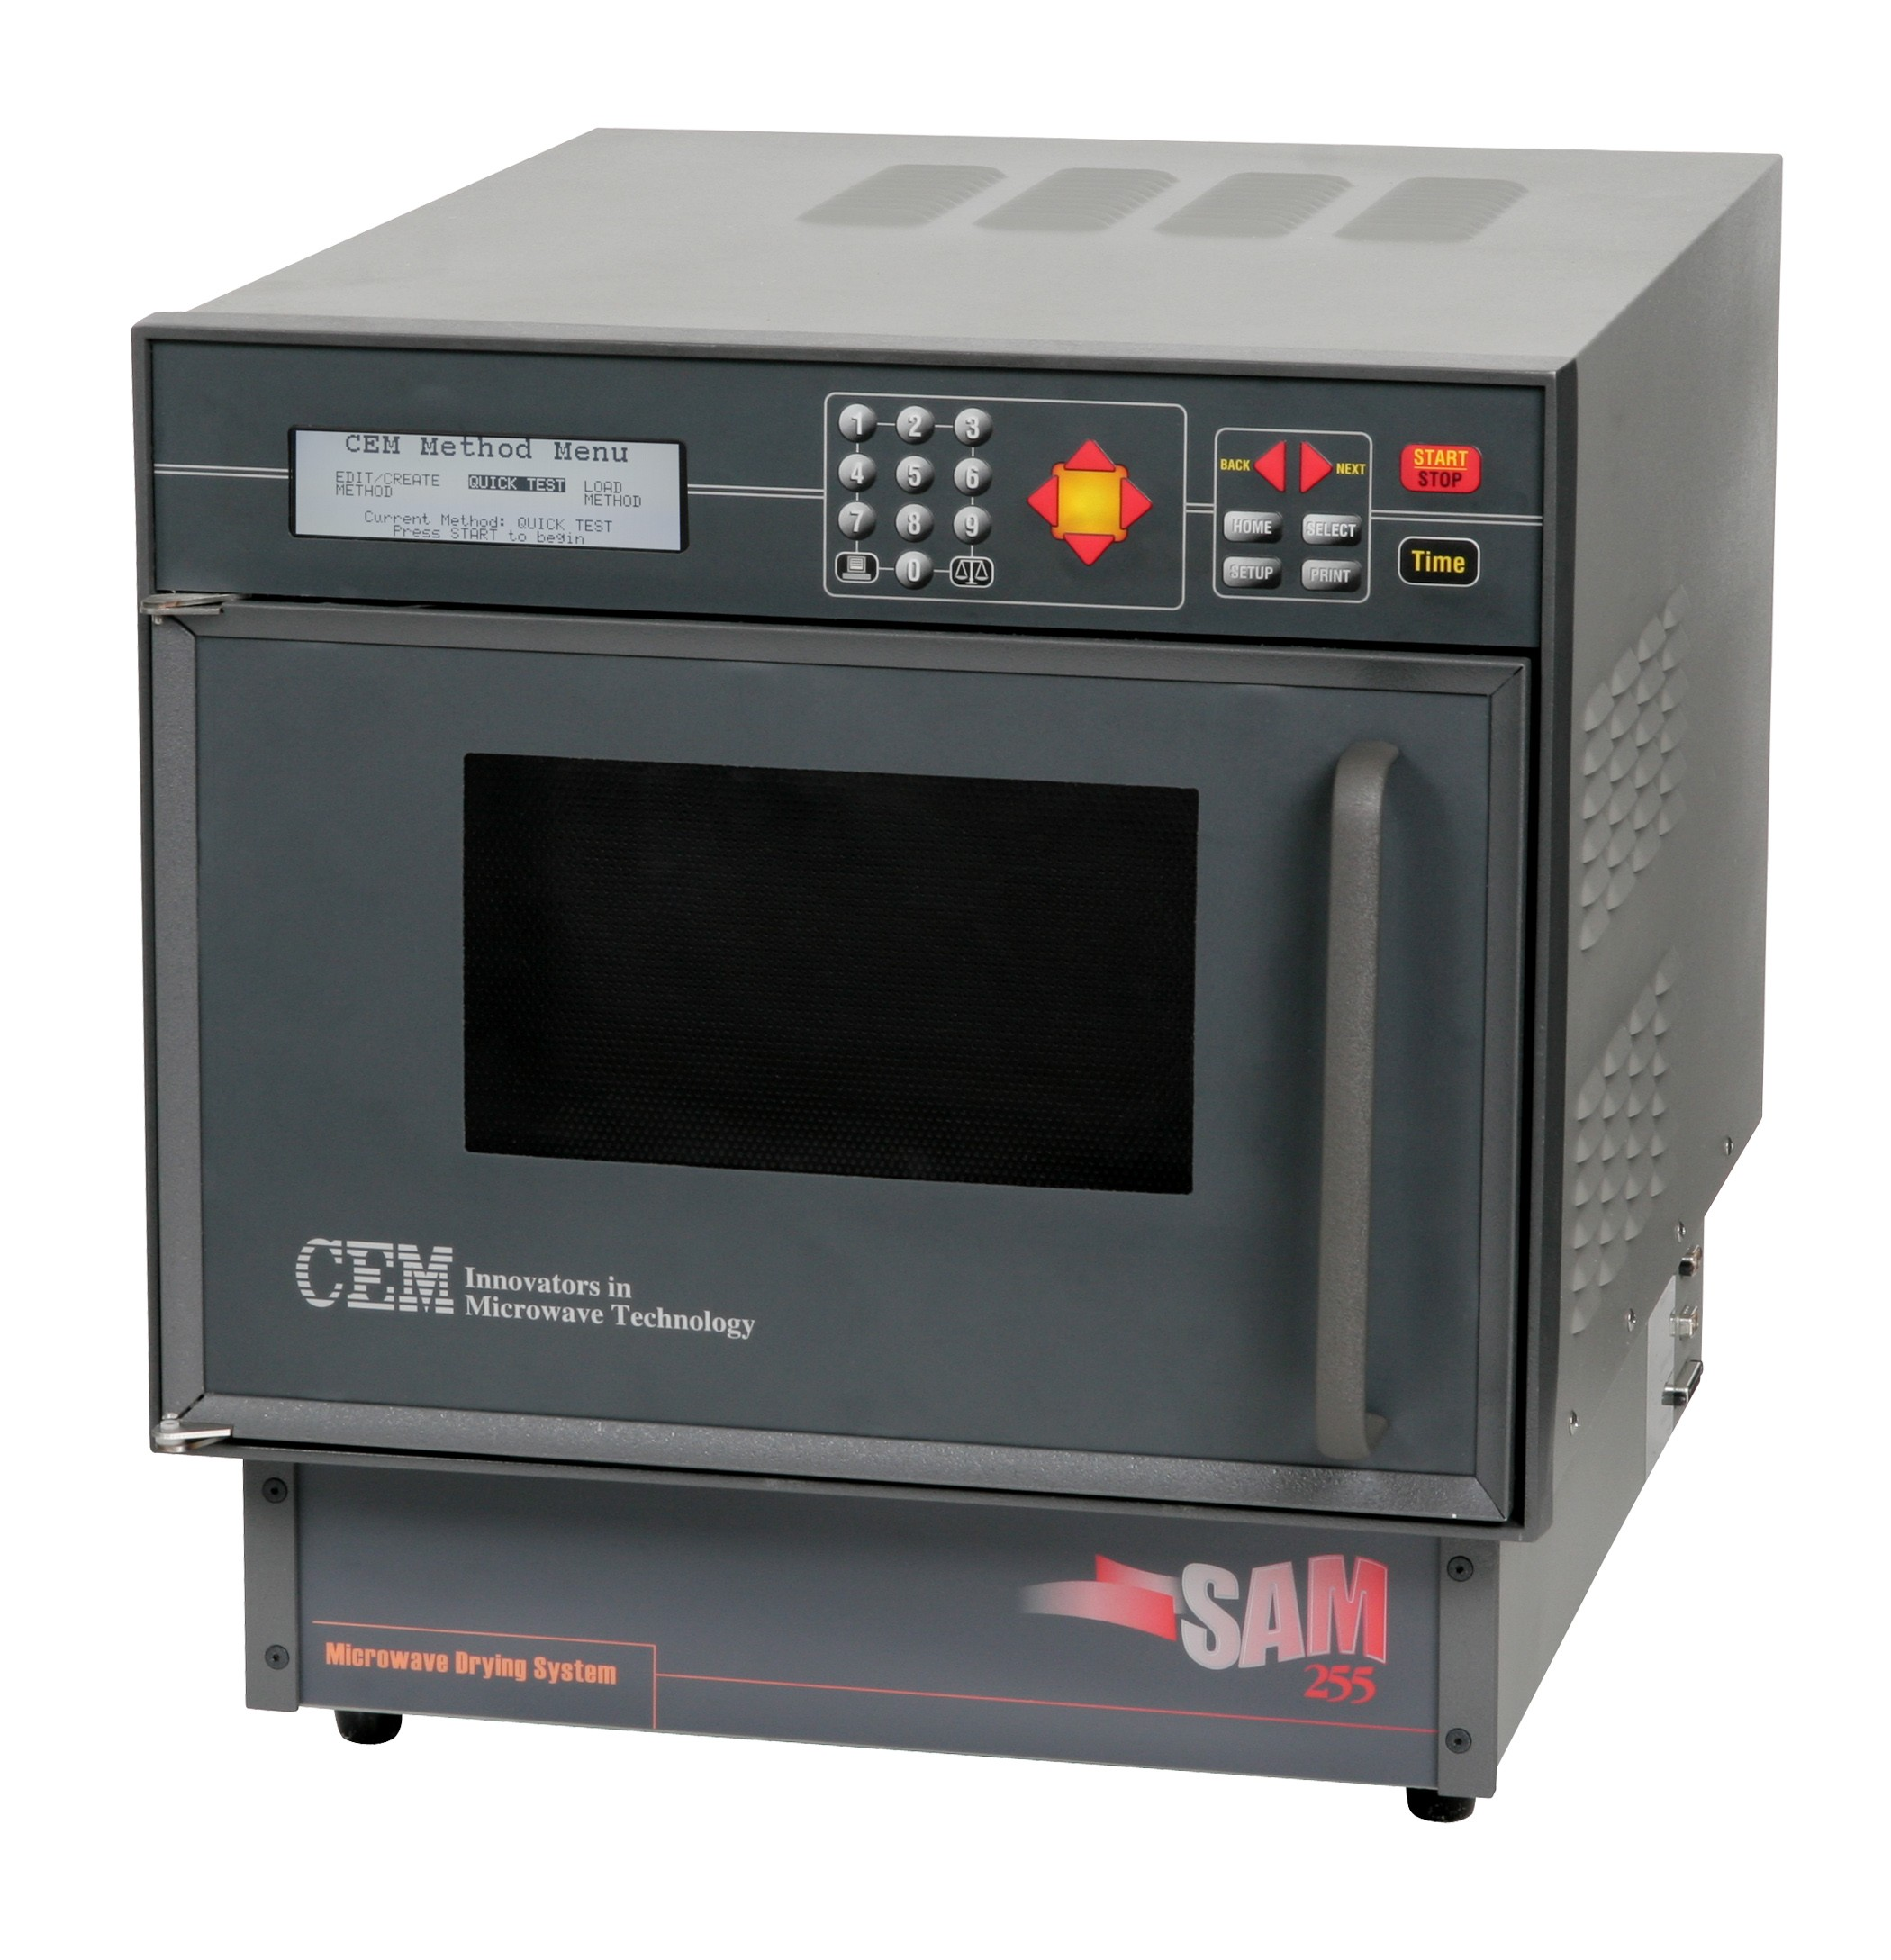 SAM 255 Microwave Solids and Moisture Analysis System